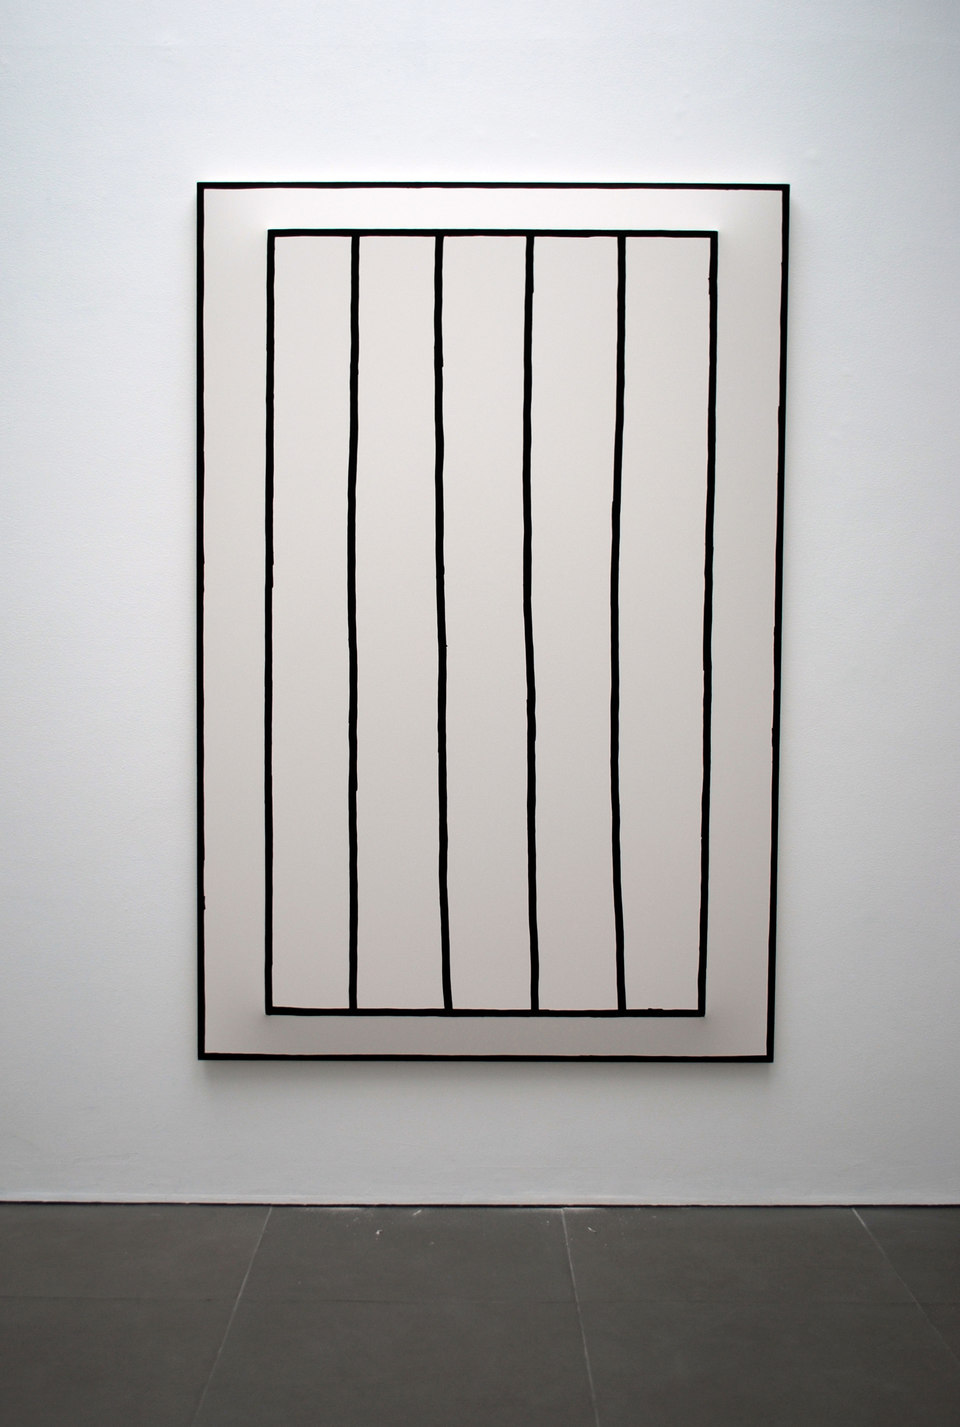 Oliver Perkins, 'ACCORDION', 2011, Cell Project Space